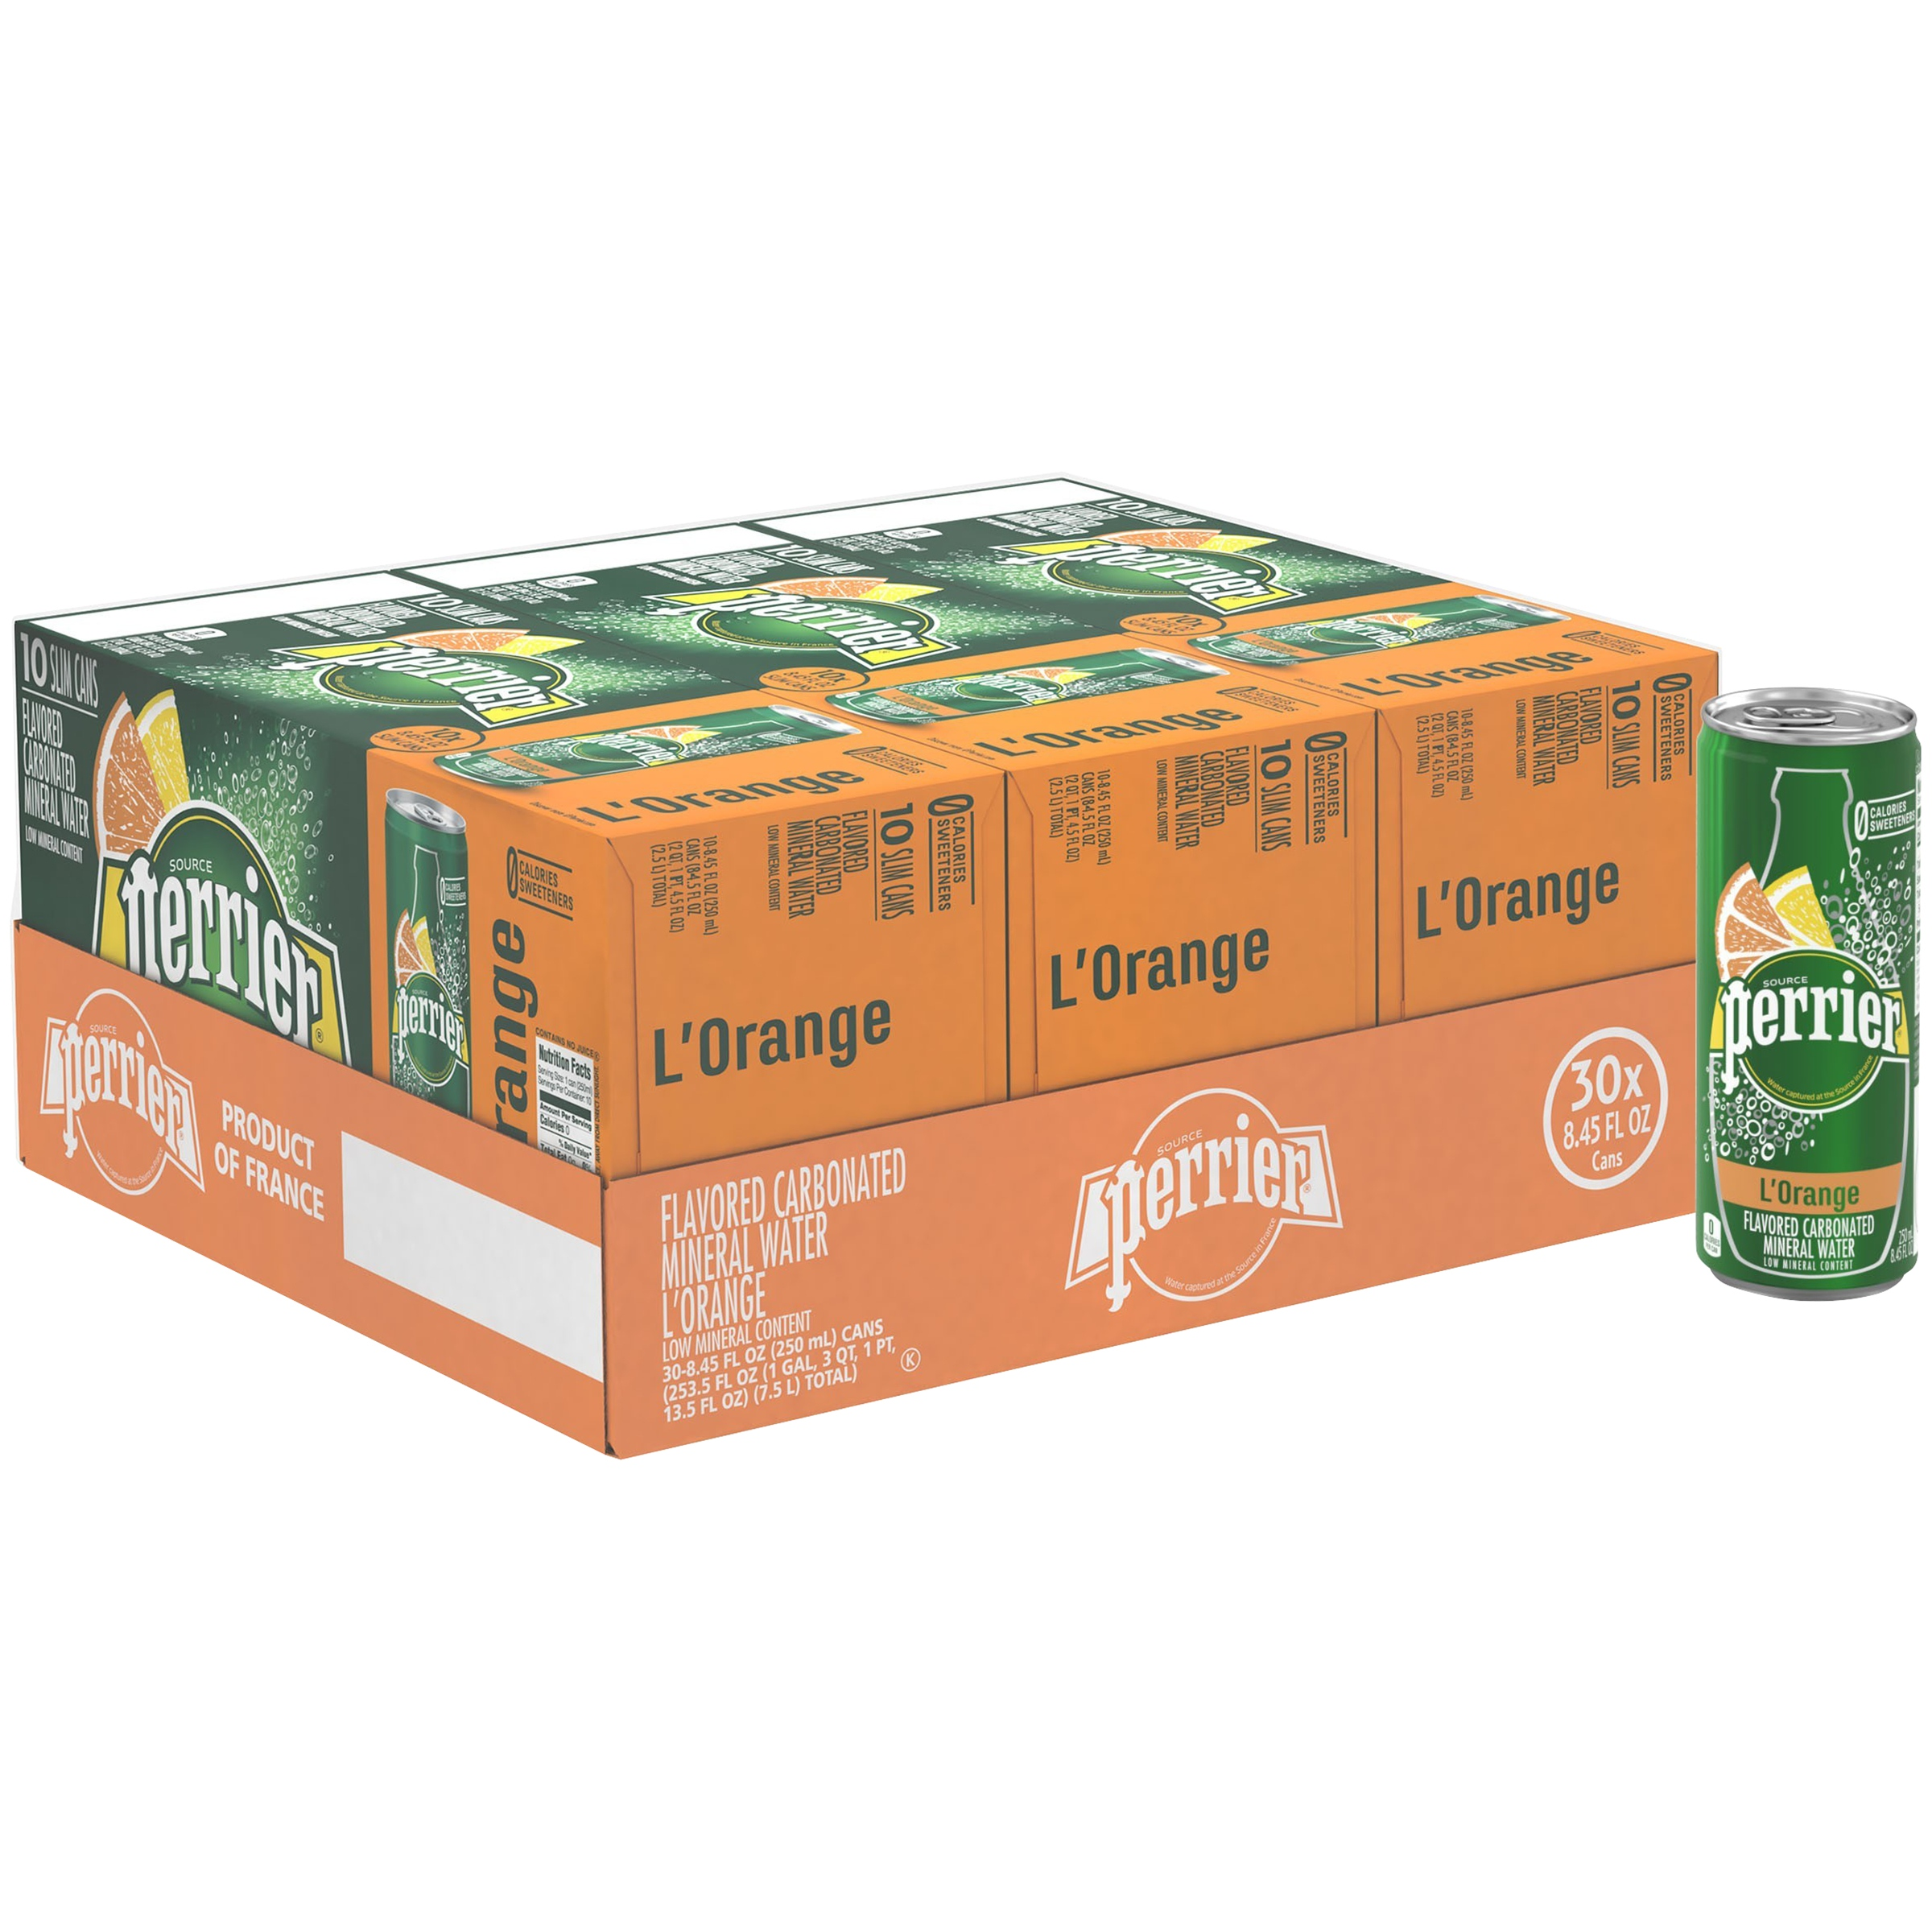 (30 Cans) PERRIER L'Orange Flavored Carbonated Mineral Water, 8.45 Fl Oz